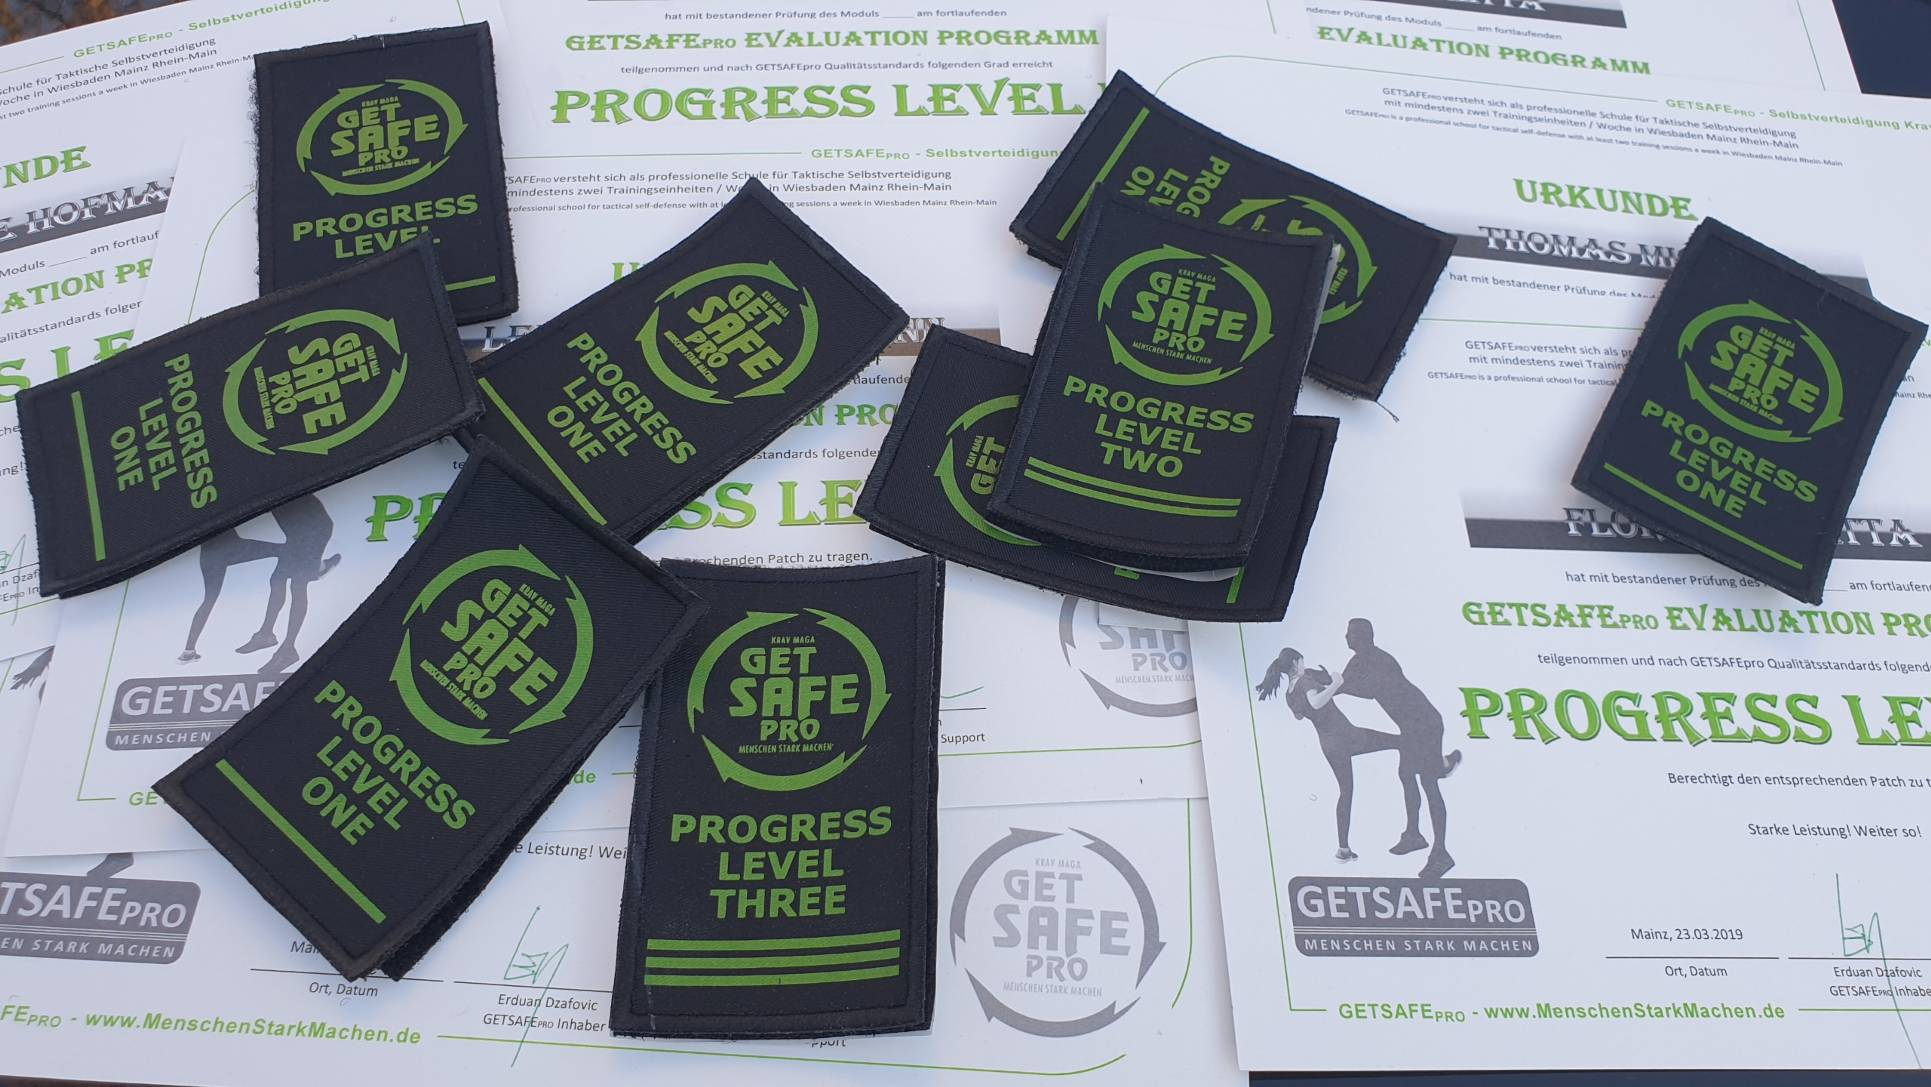 GETSAFEpro Krav Maga Selbstverteidigung Progress Evaluation Programm